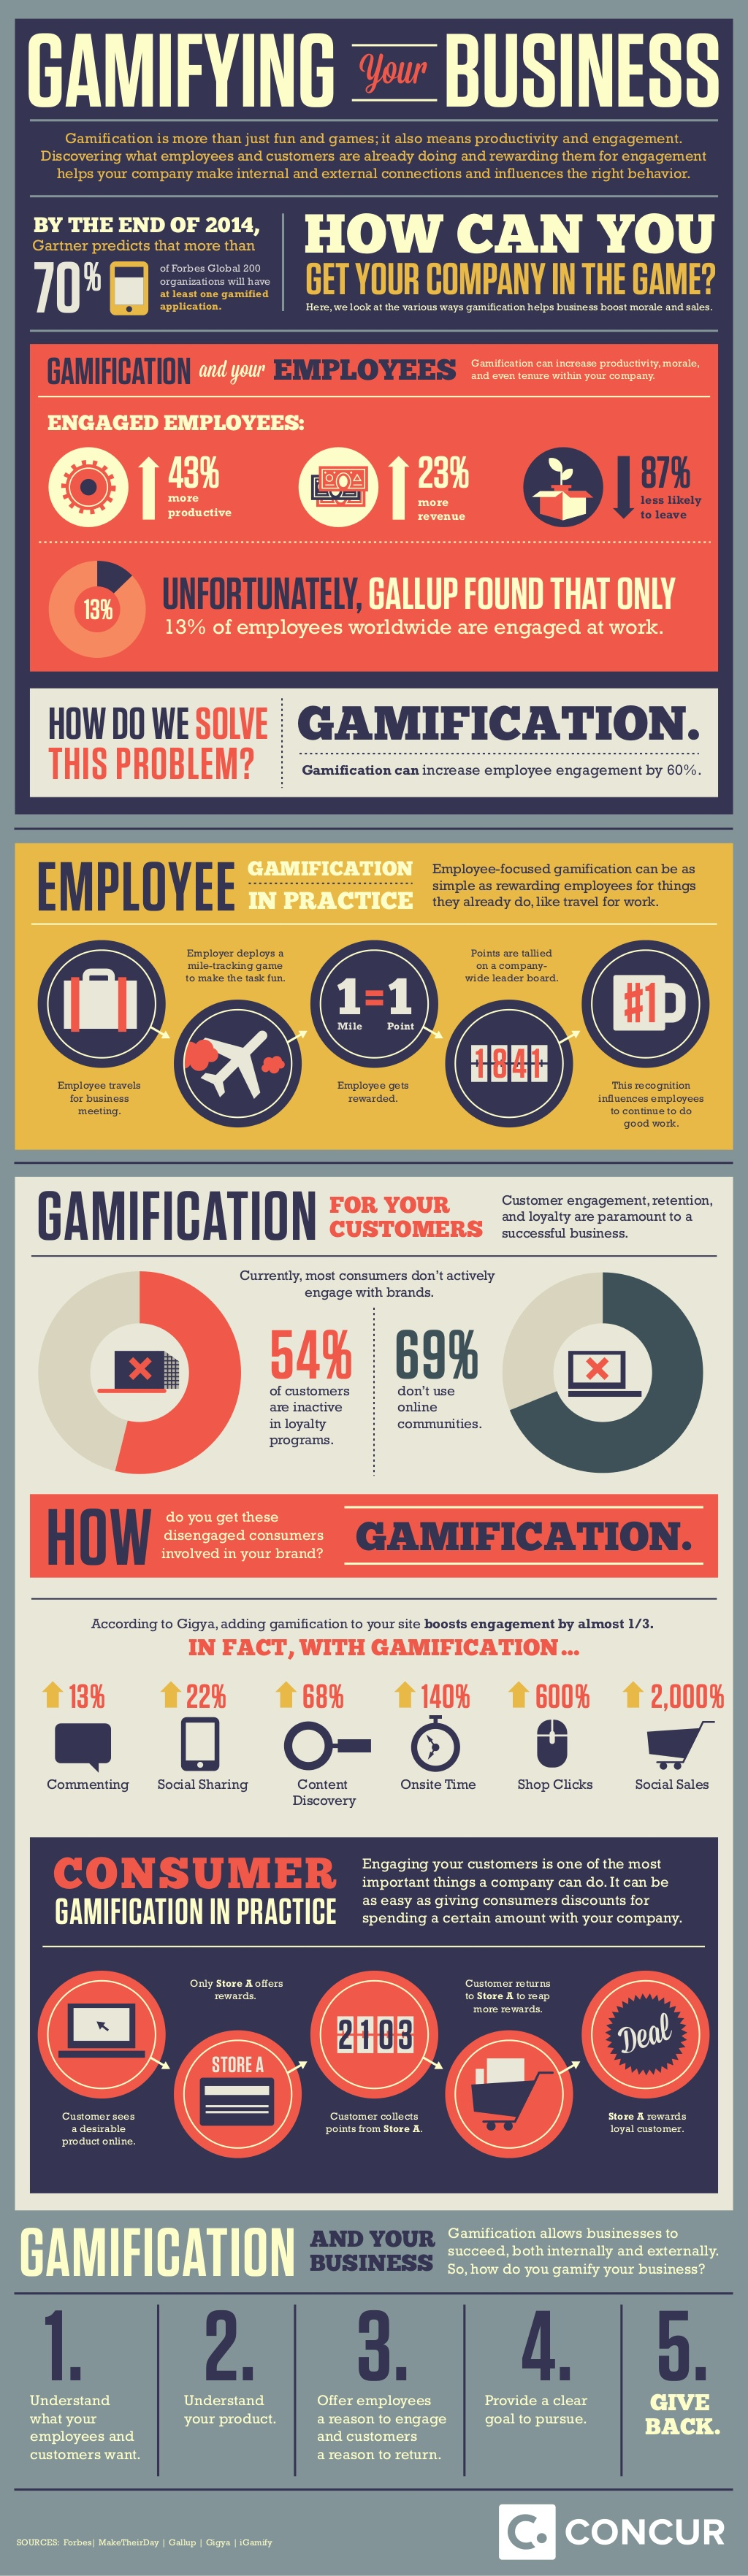 Gamifing Your Business